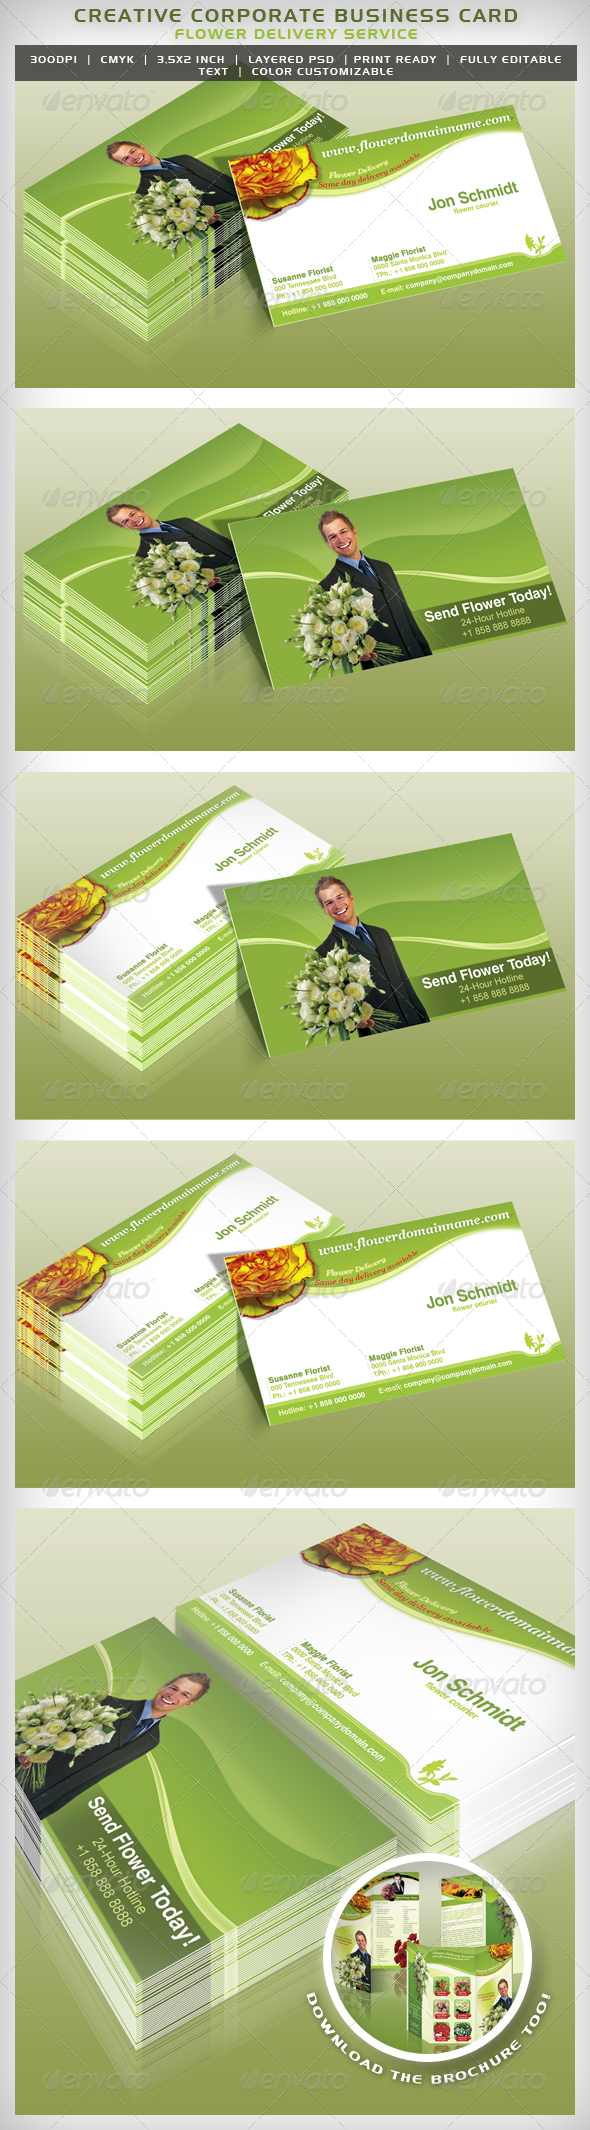 Flower Delivery Service - Business Card | Flower delivery service ...